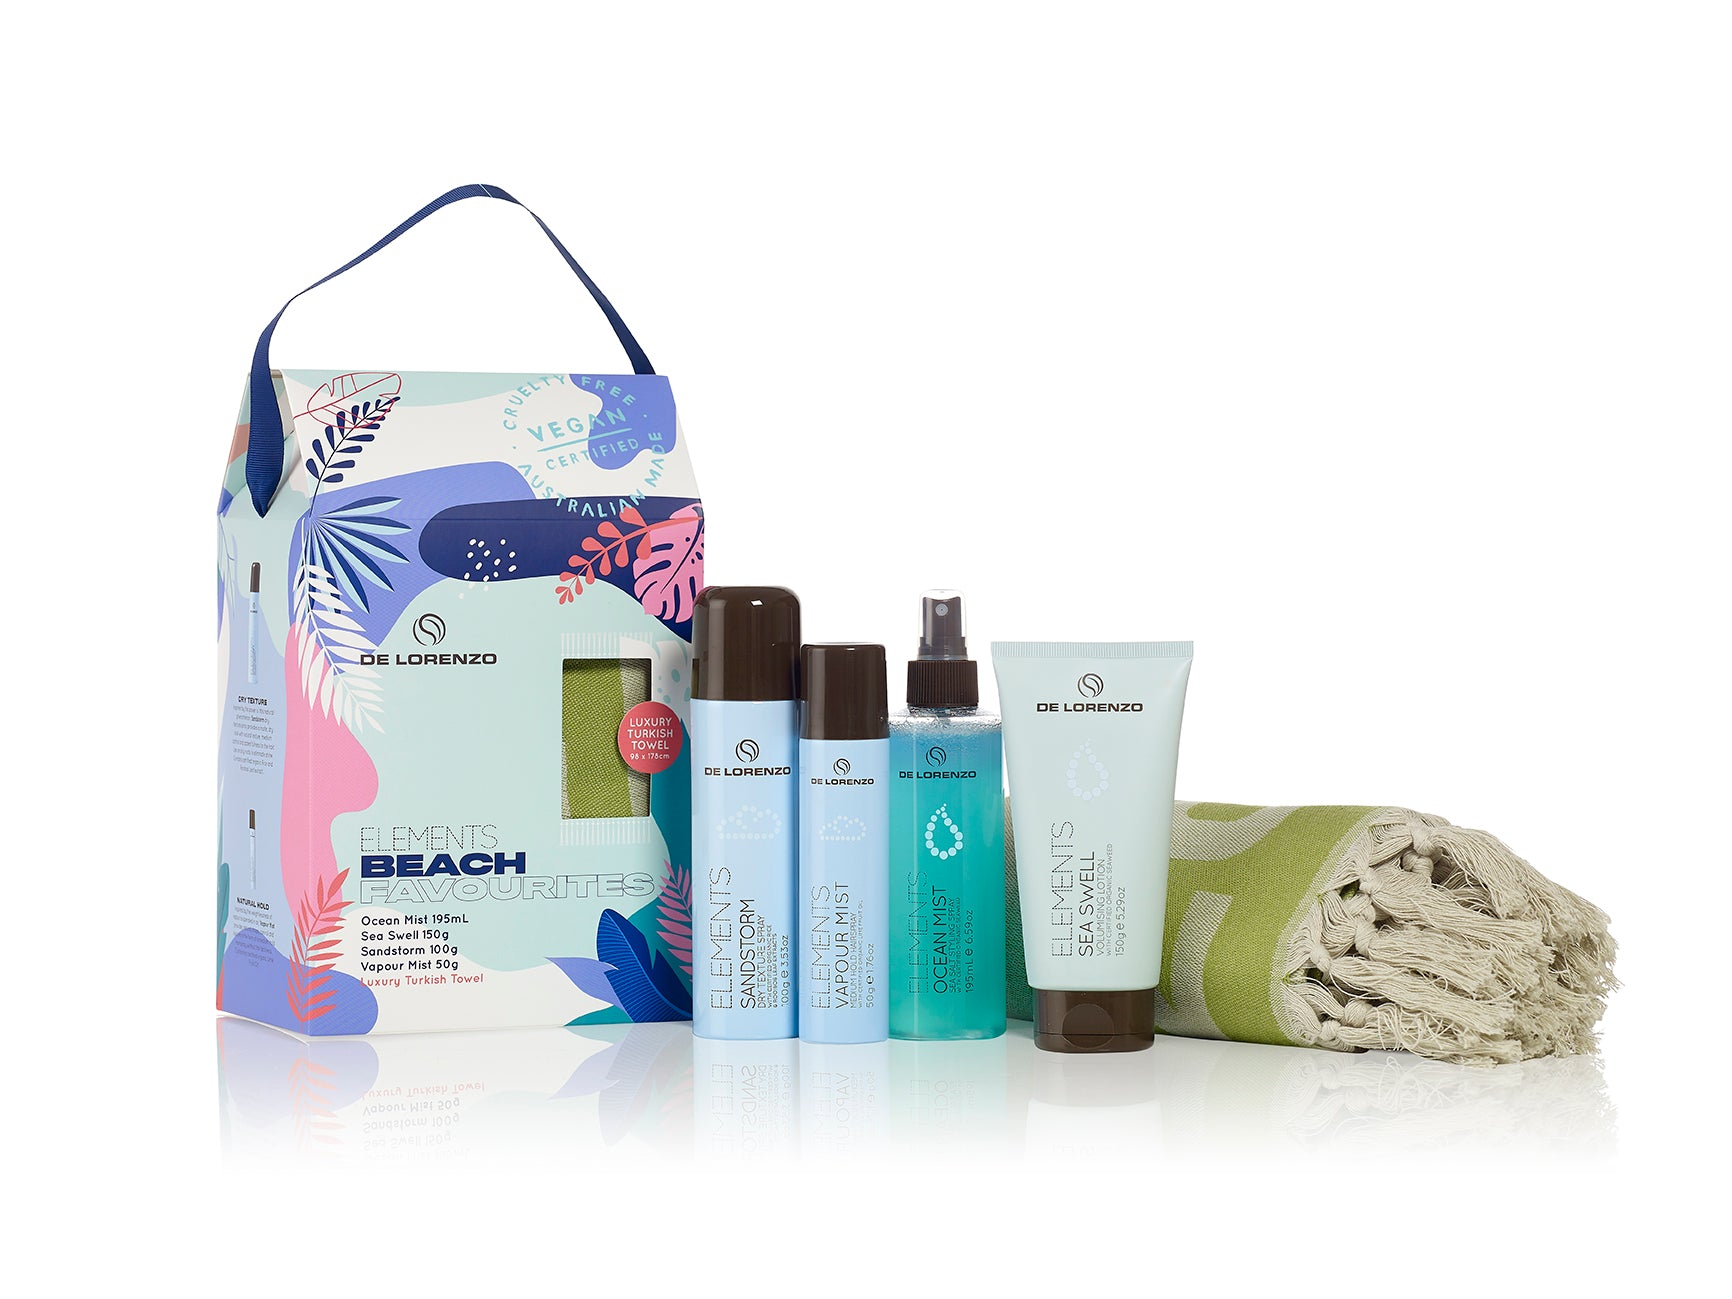 Elements Beach Favourites Pack